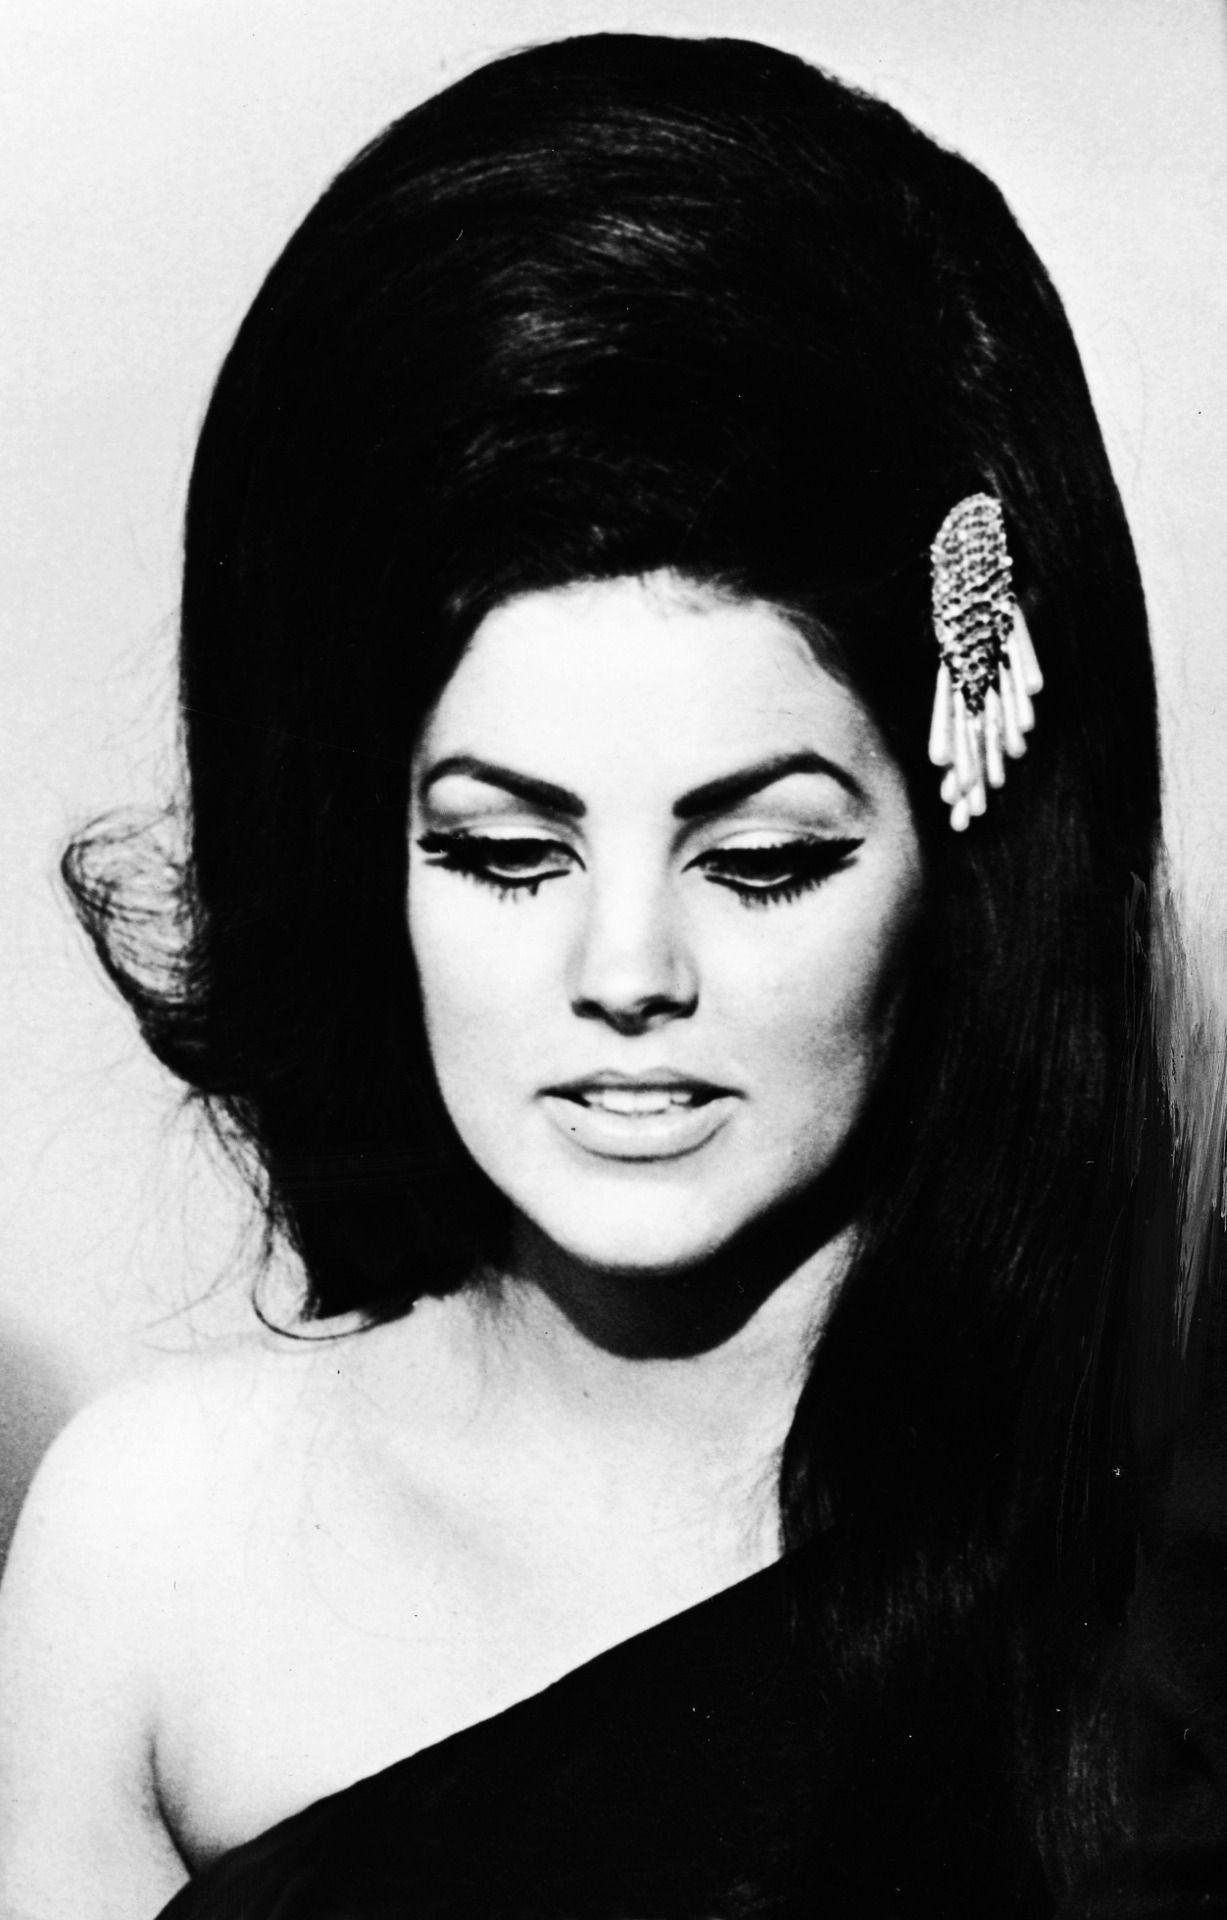 Interesting. priscilla presley hair